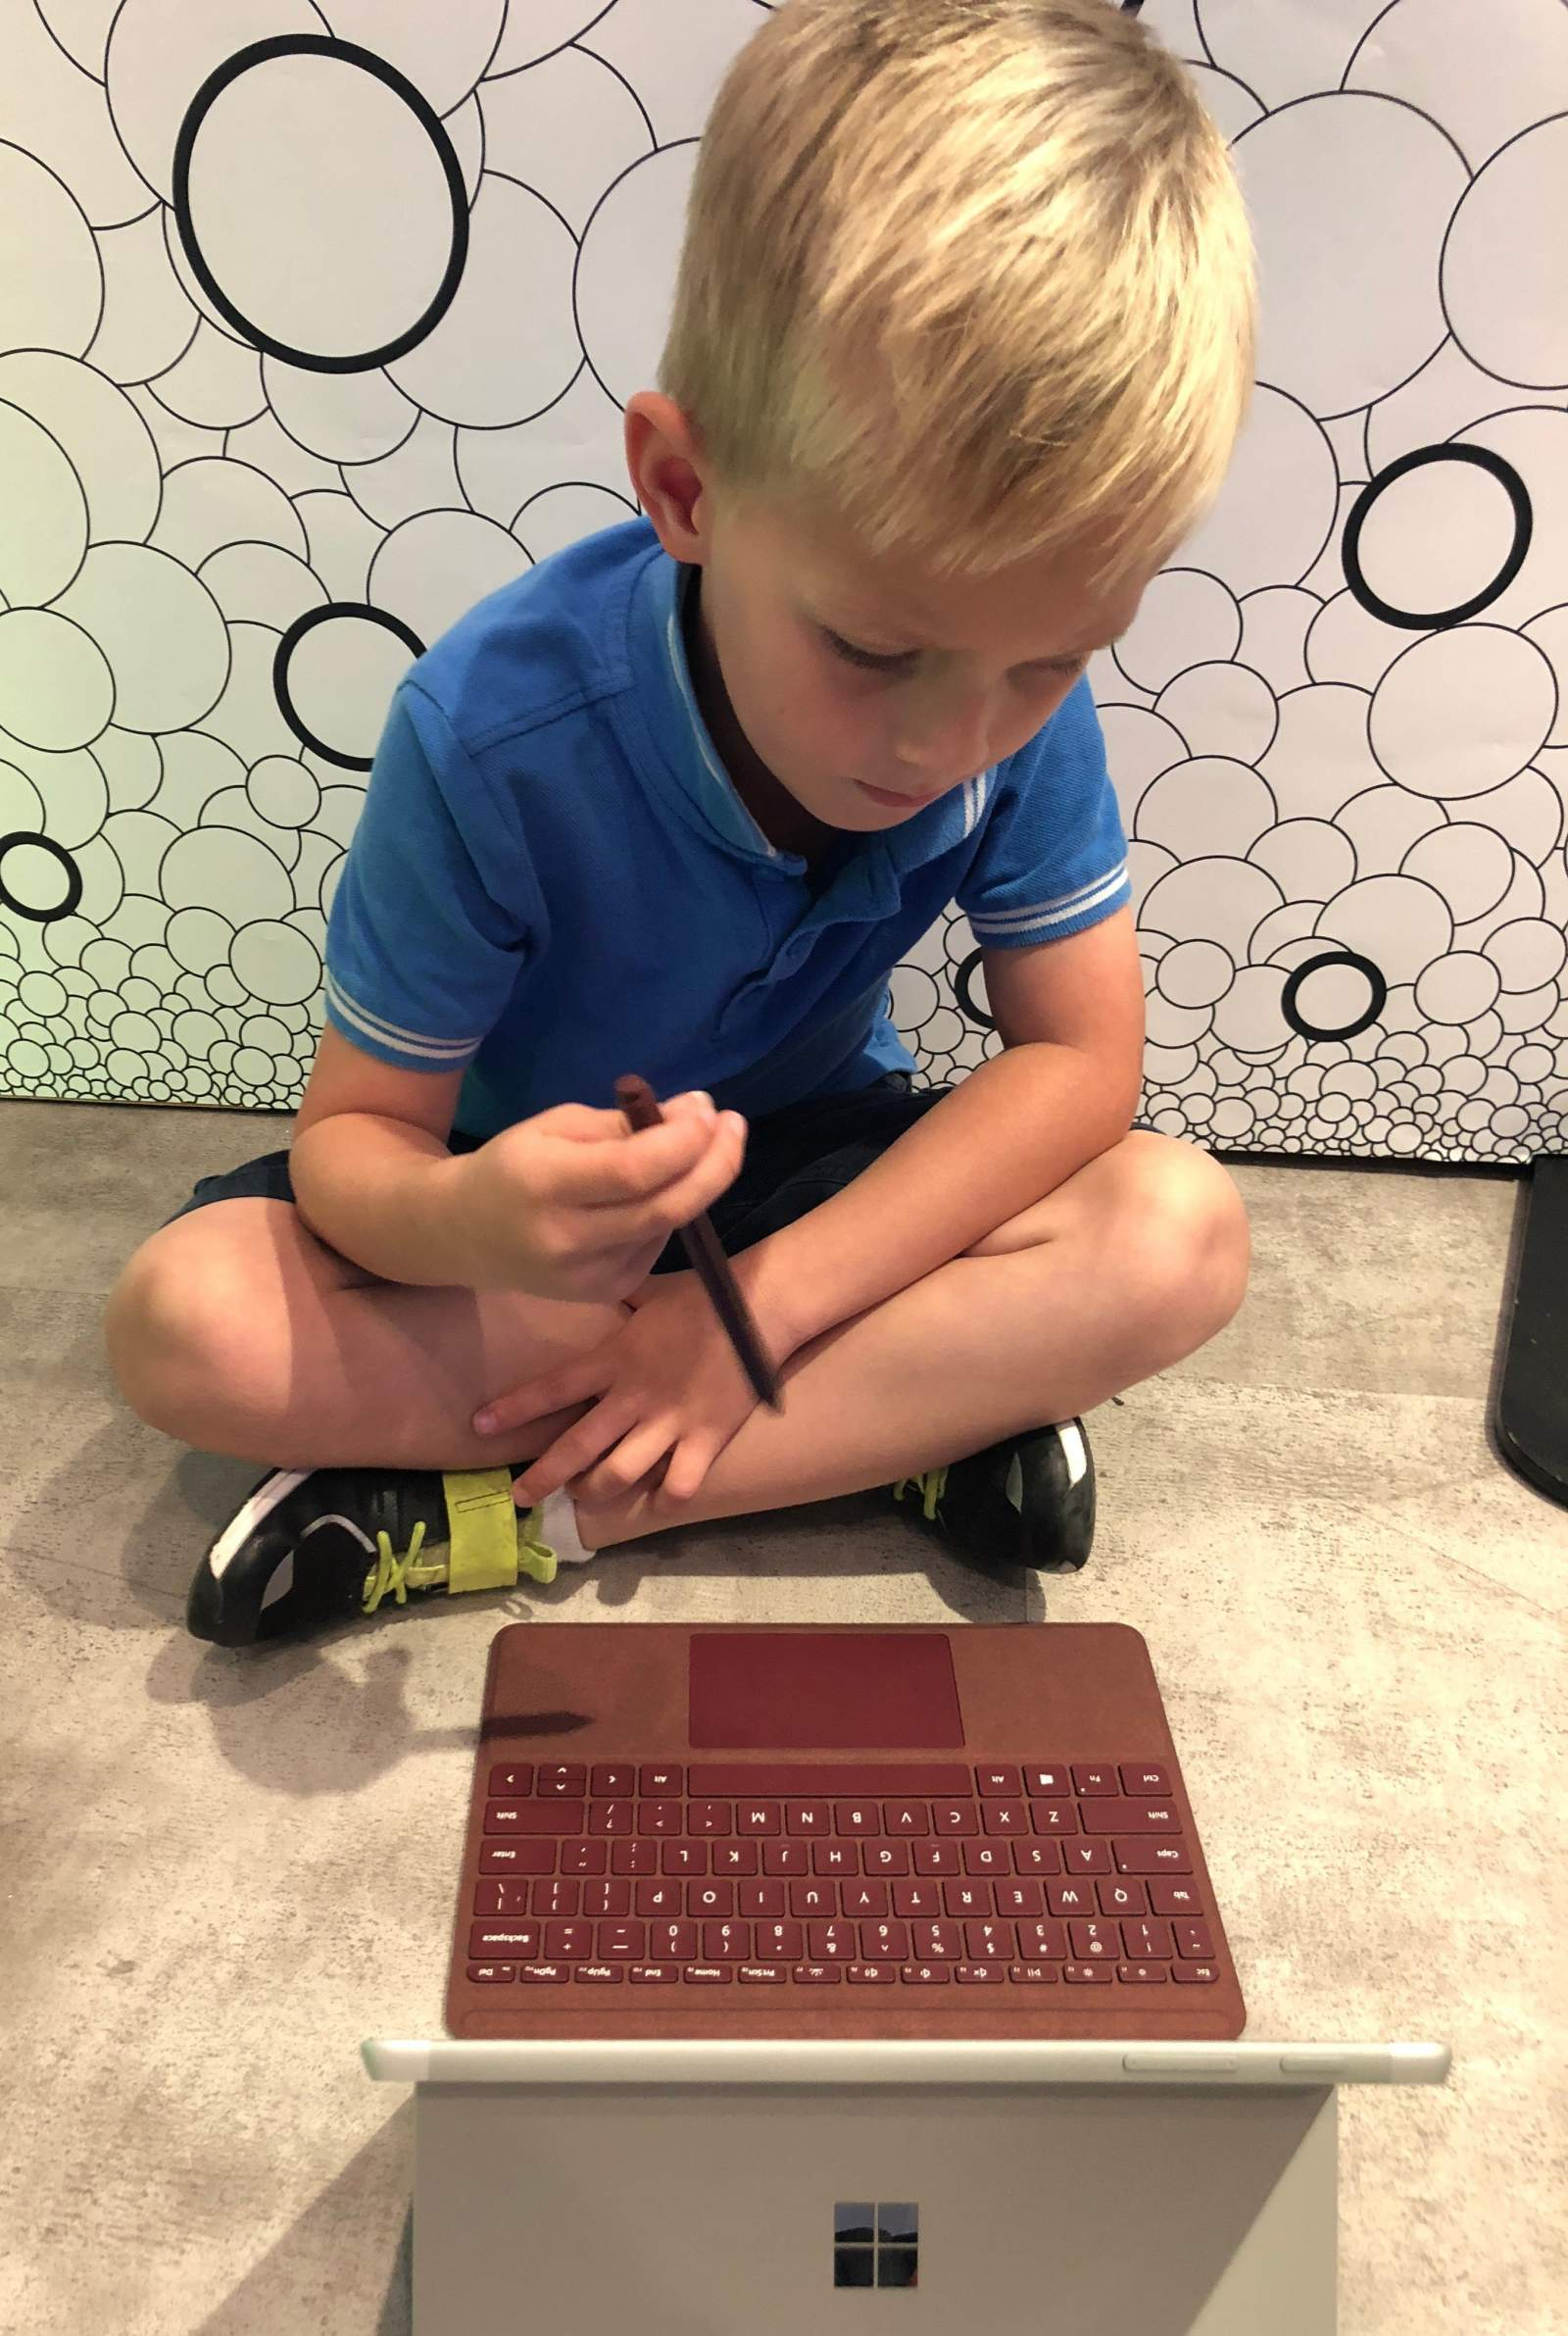 james using microsoft surface go